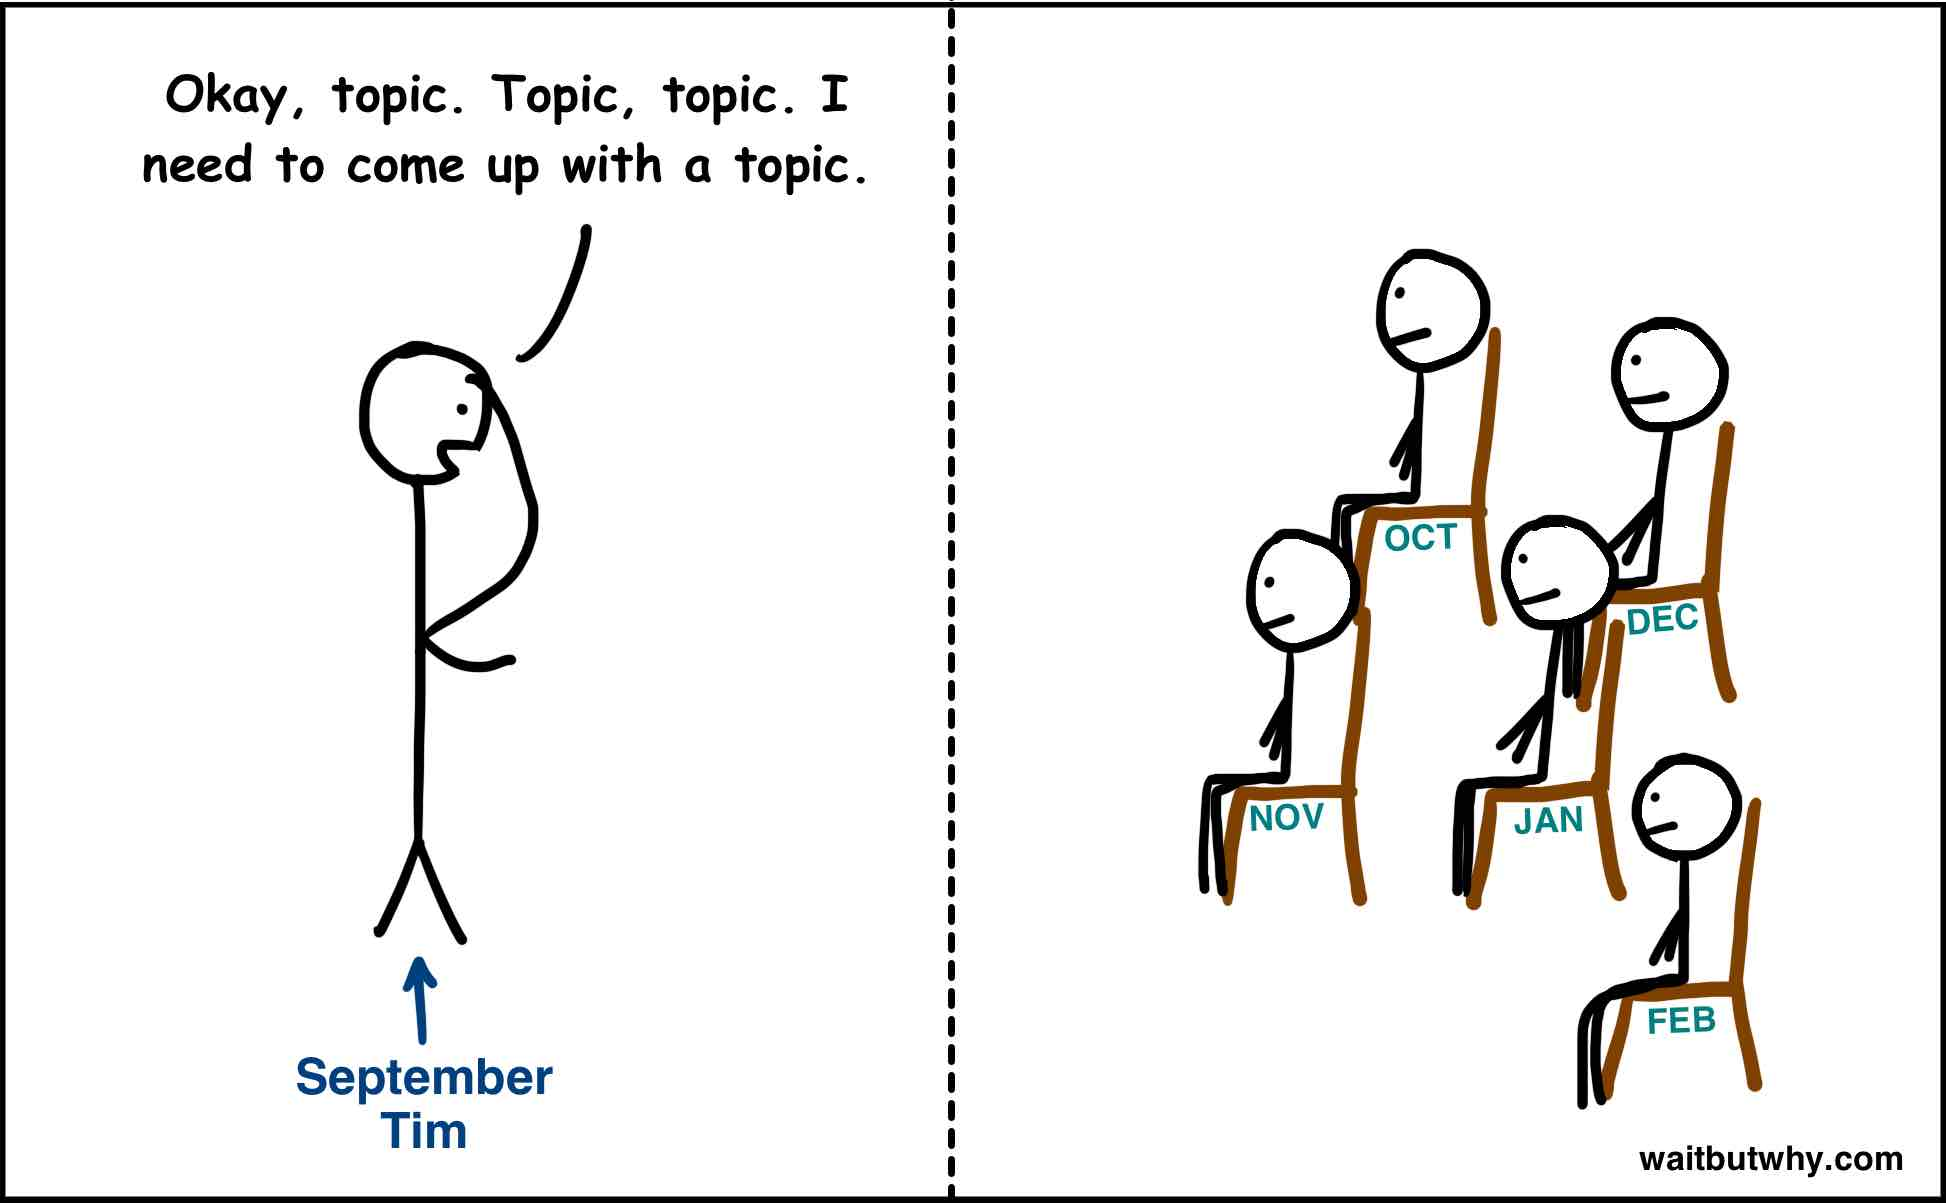 September Tim: Okay, topic. Topic, topic. I need to come up with a topic.